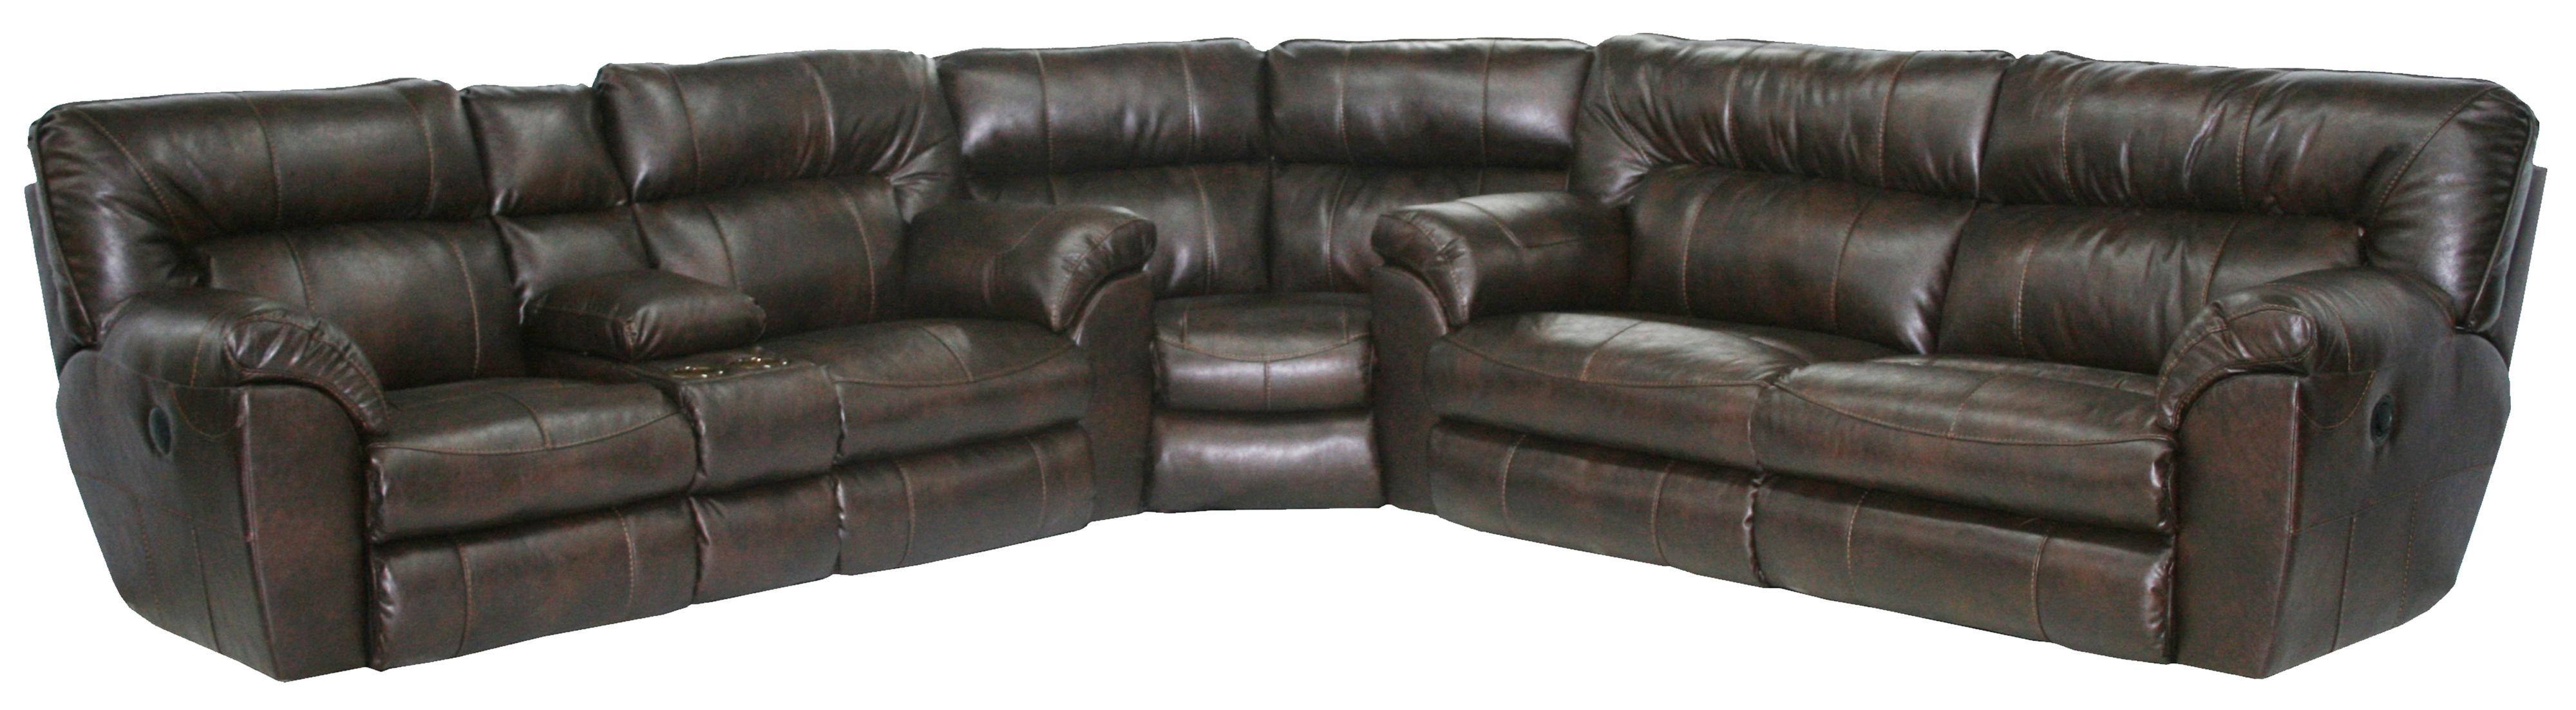 Power Reclining Sectional Sofa With Left Consolecatnapper Intended For Catnapper Sofas (View 16 of 20)